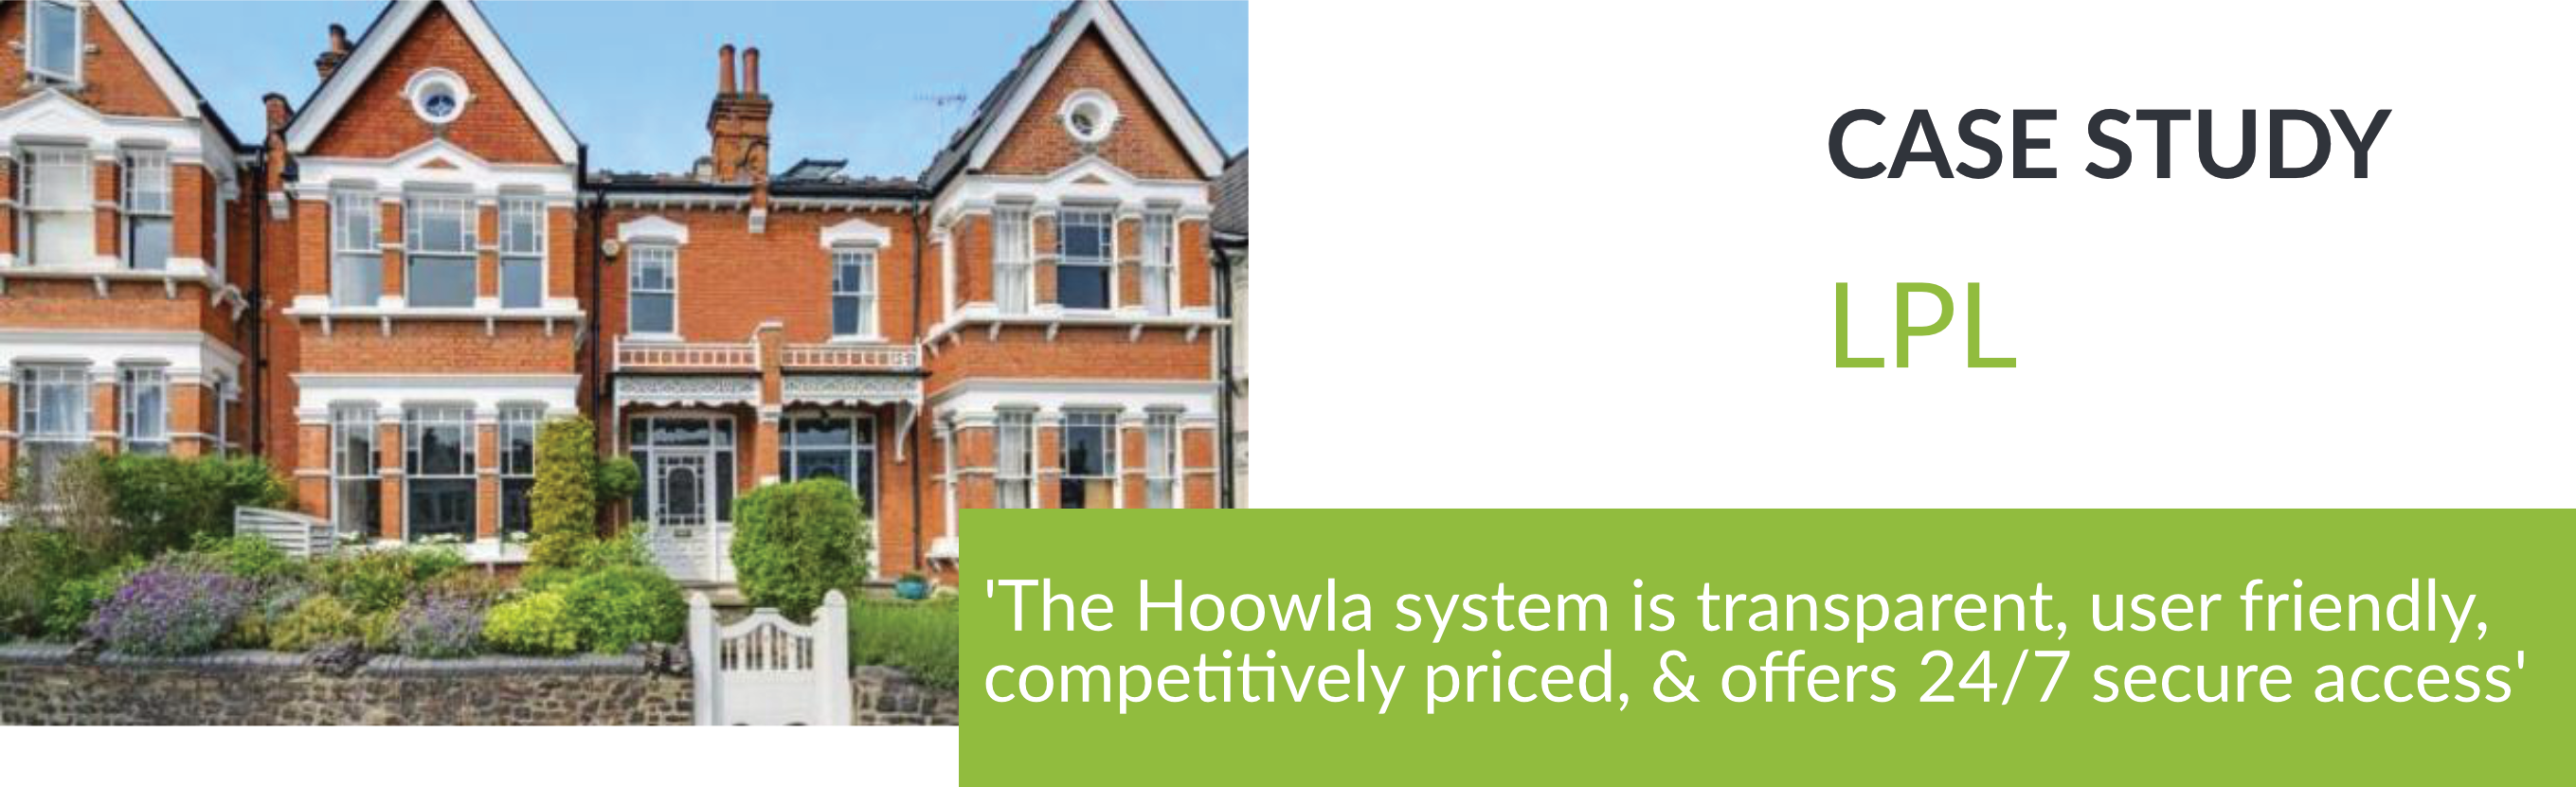 Hoowla Review LPL Case Study